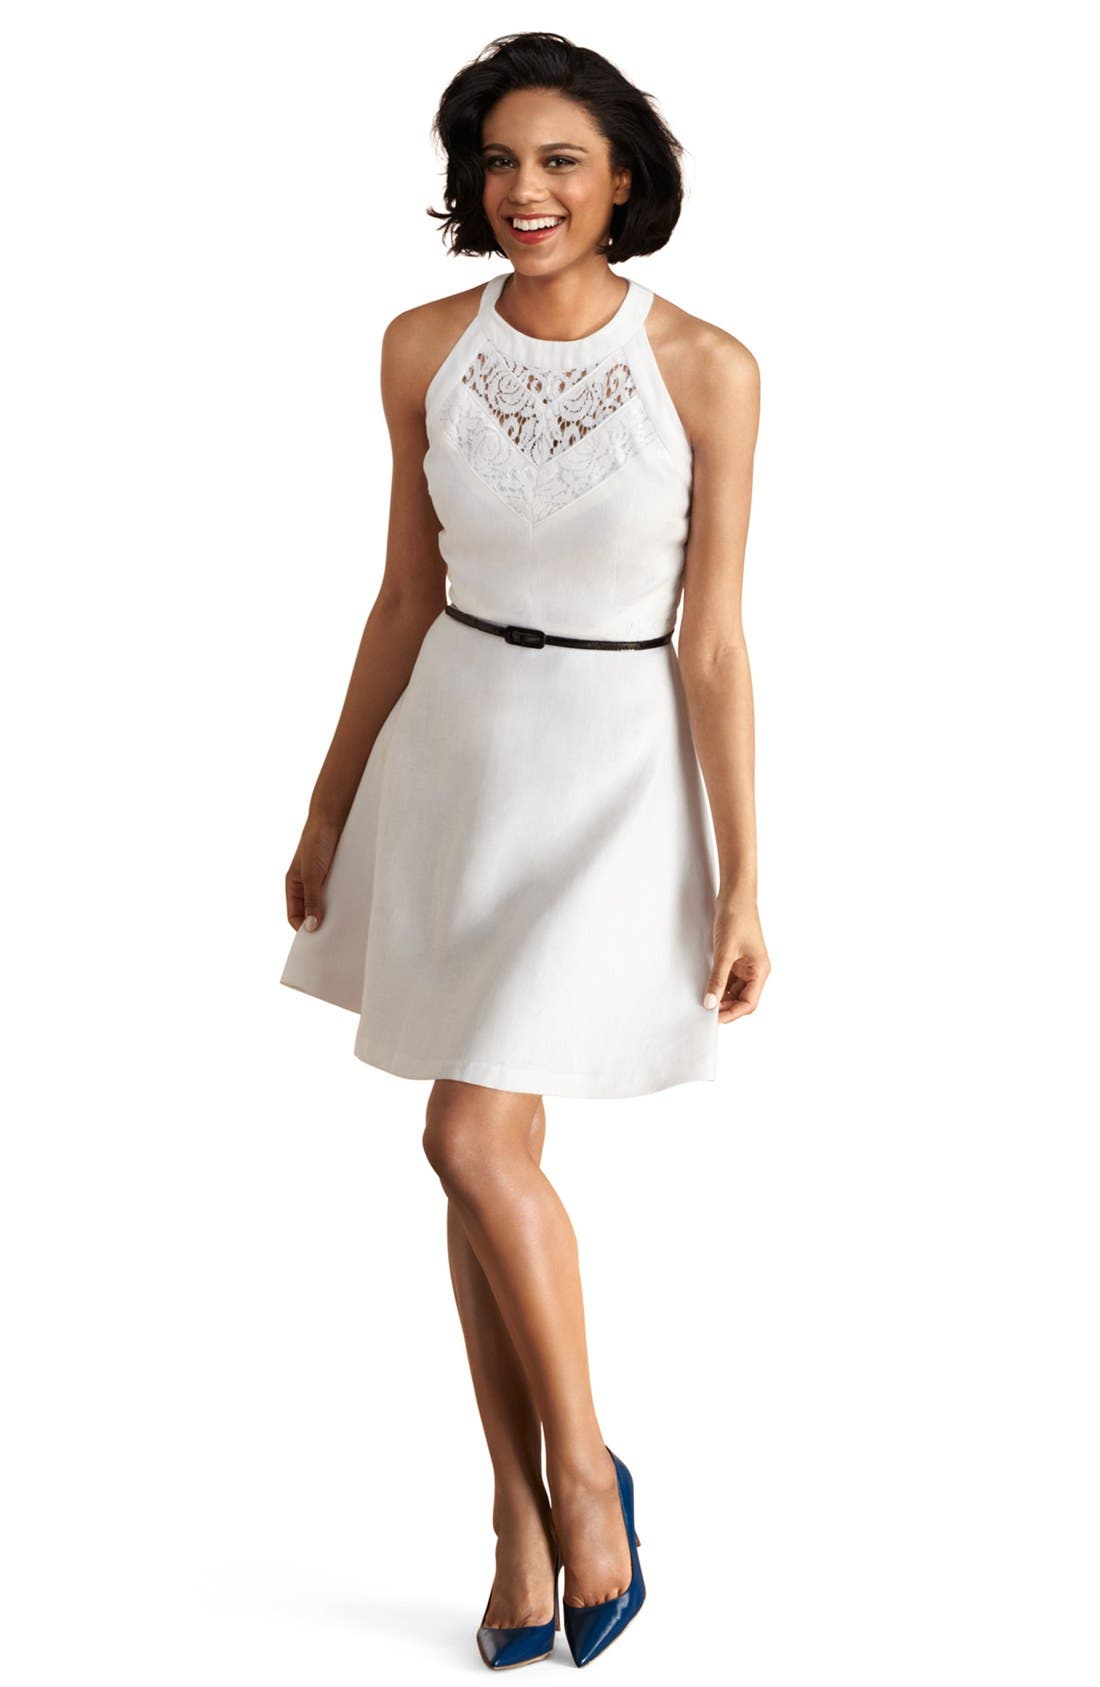 Main Image - Donna Morgan Lace Inset Fit & Flare Dress (Petite)